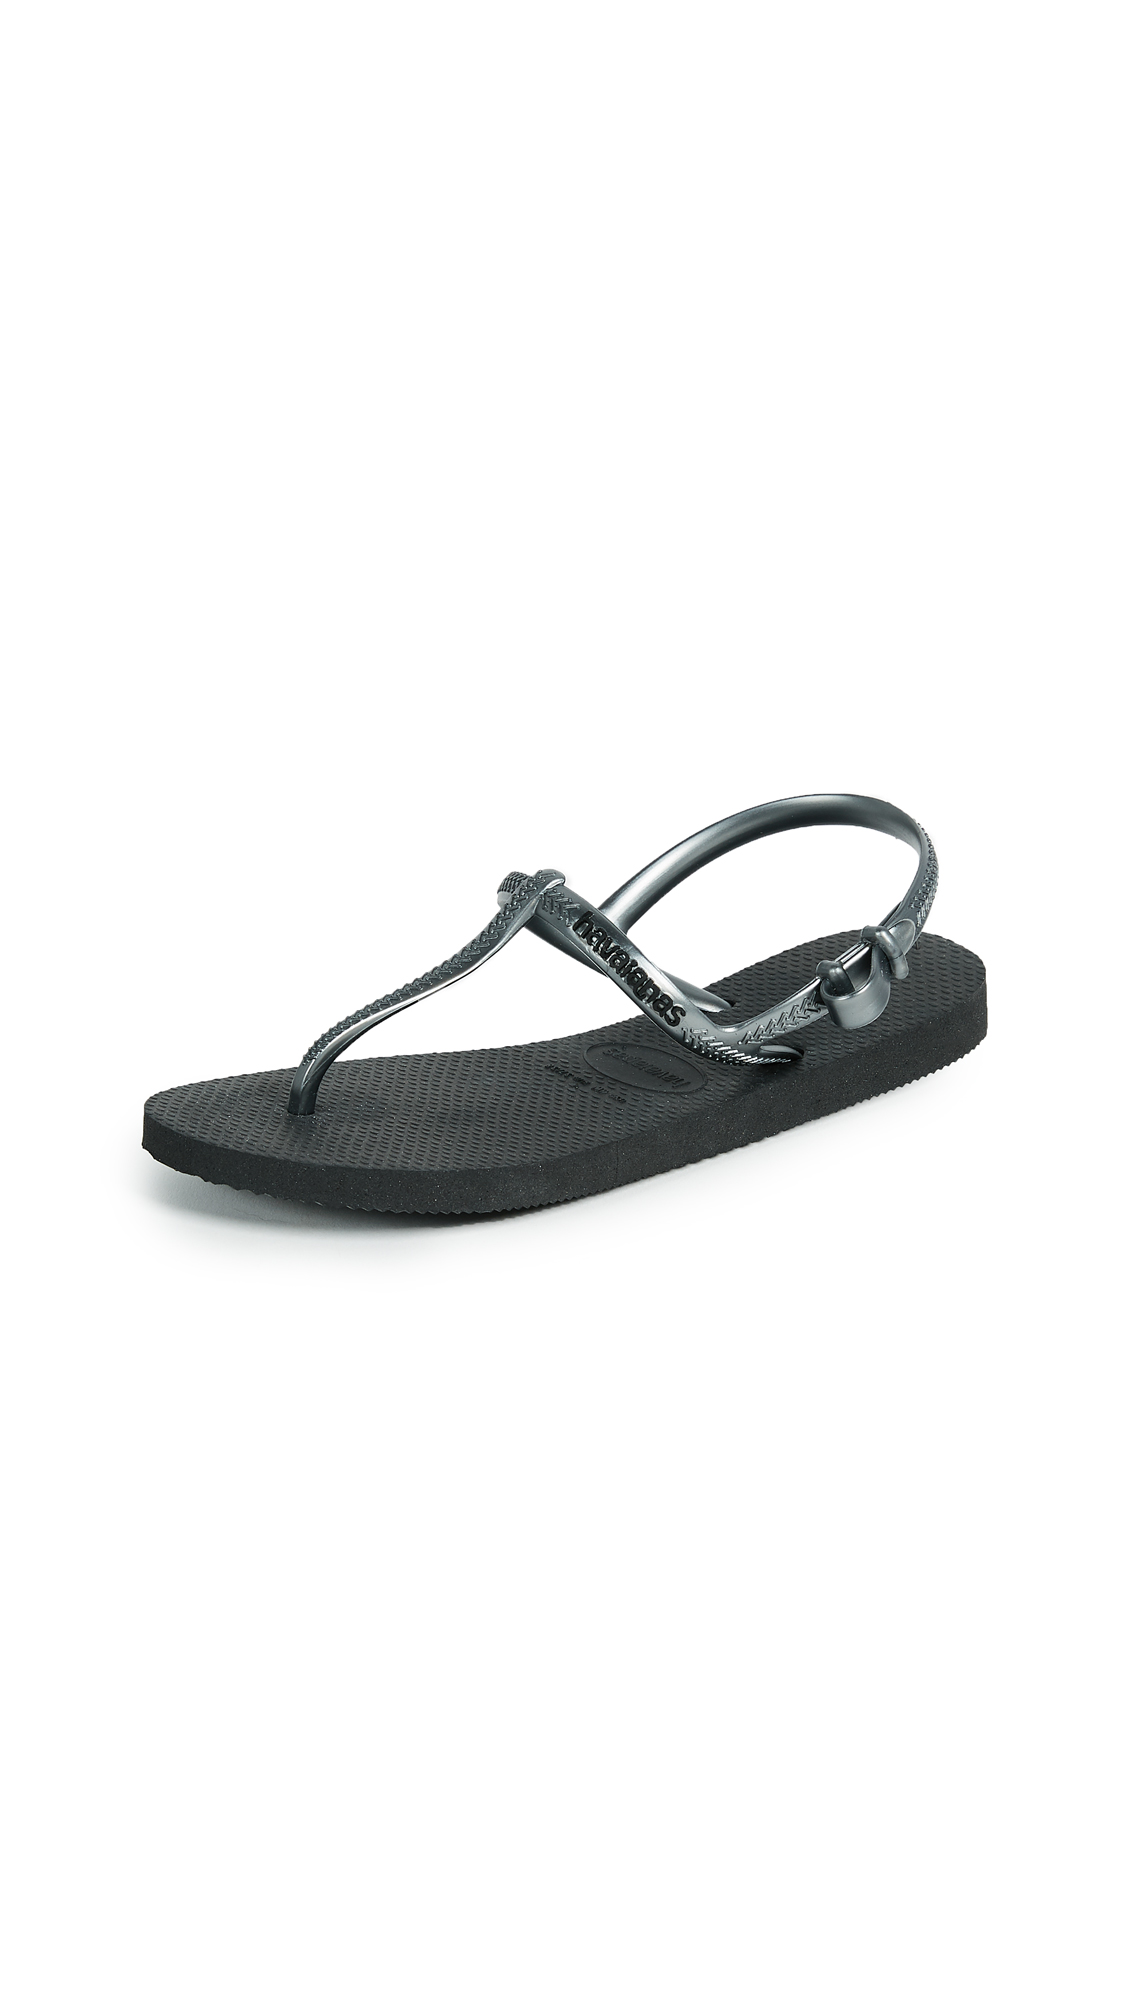 Havaianas Freedom T Strap Sandals - Black